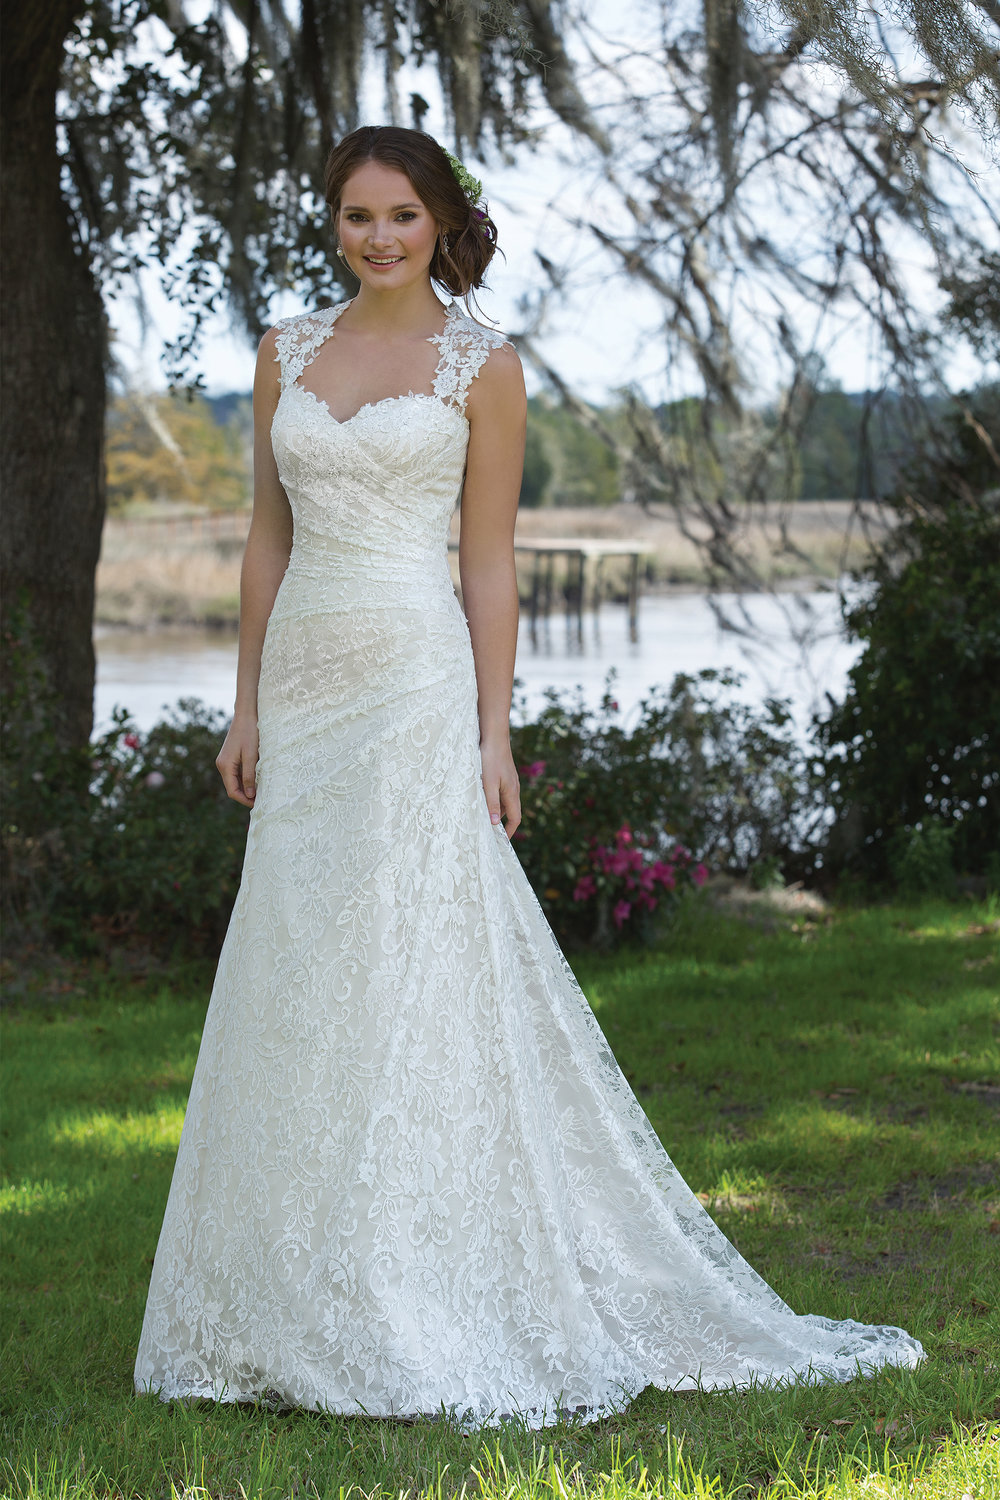 Destination Wedding Dresses.Plus Size Destination Wedding Dresses Lixnet Ag